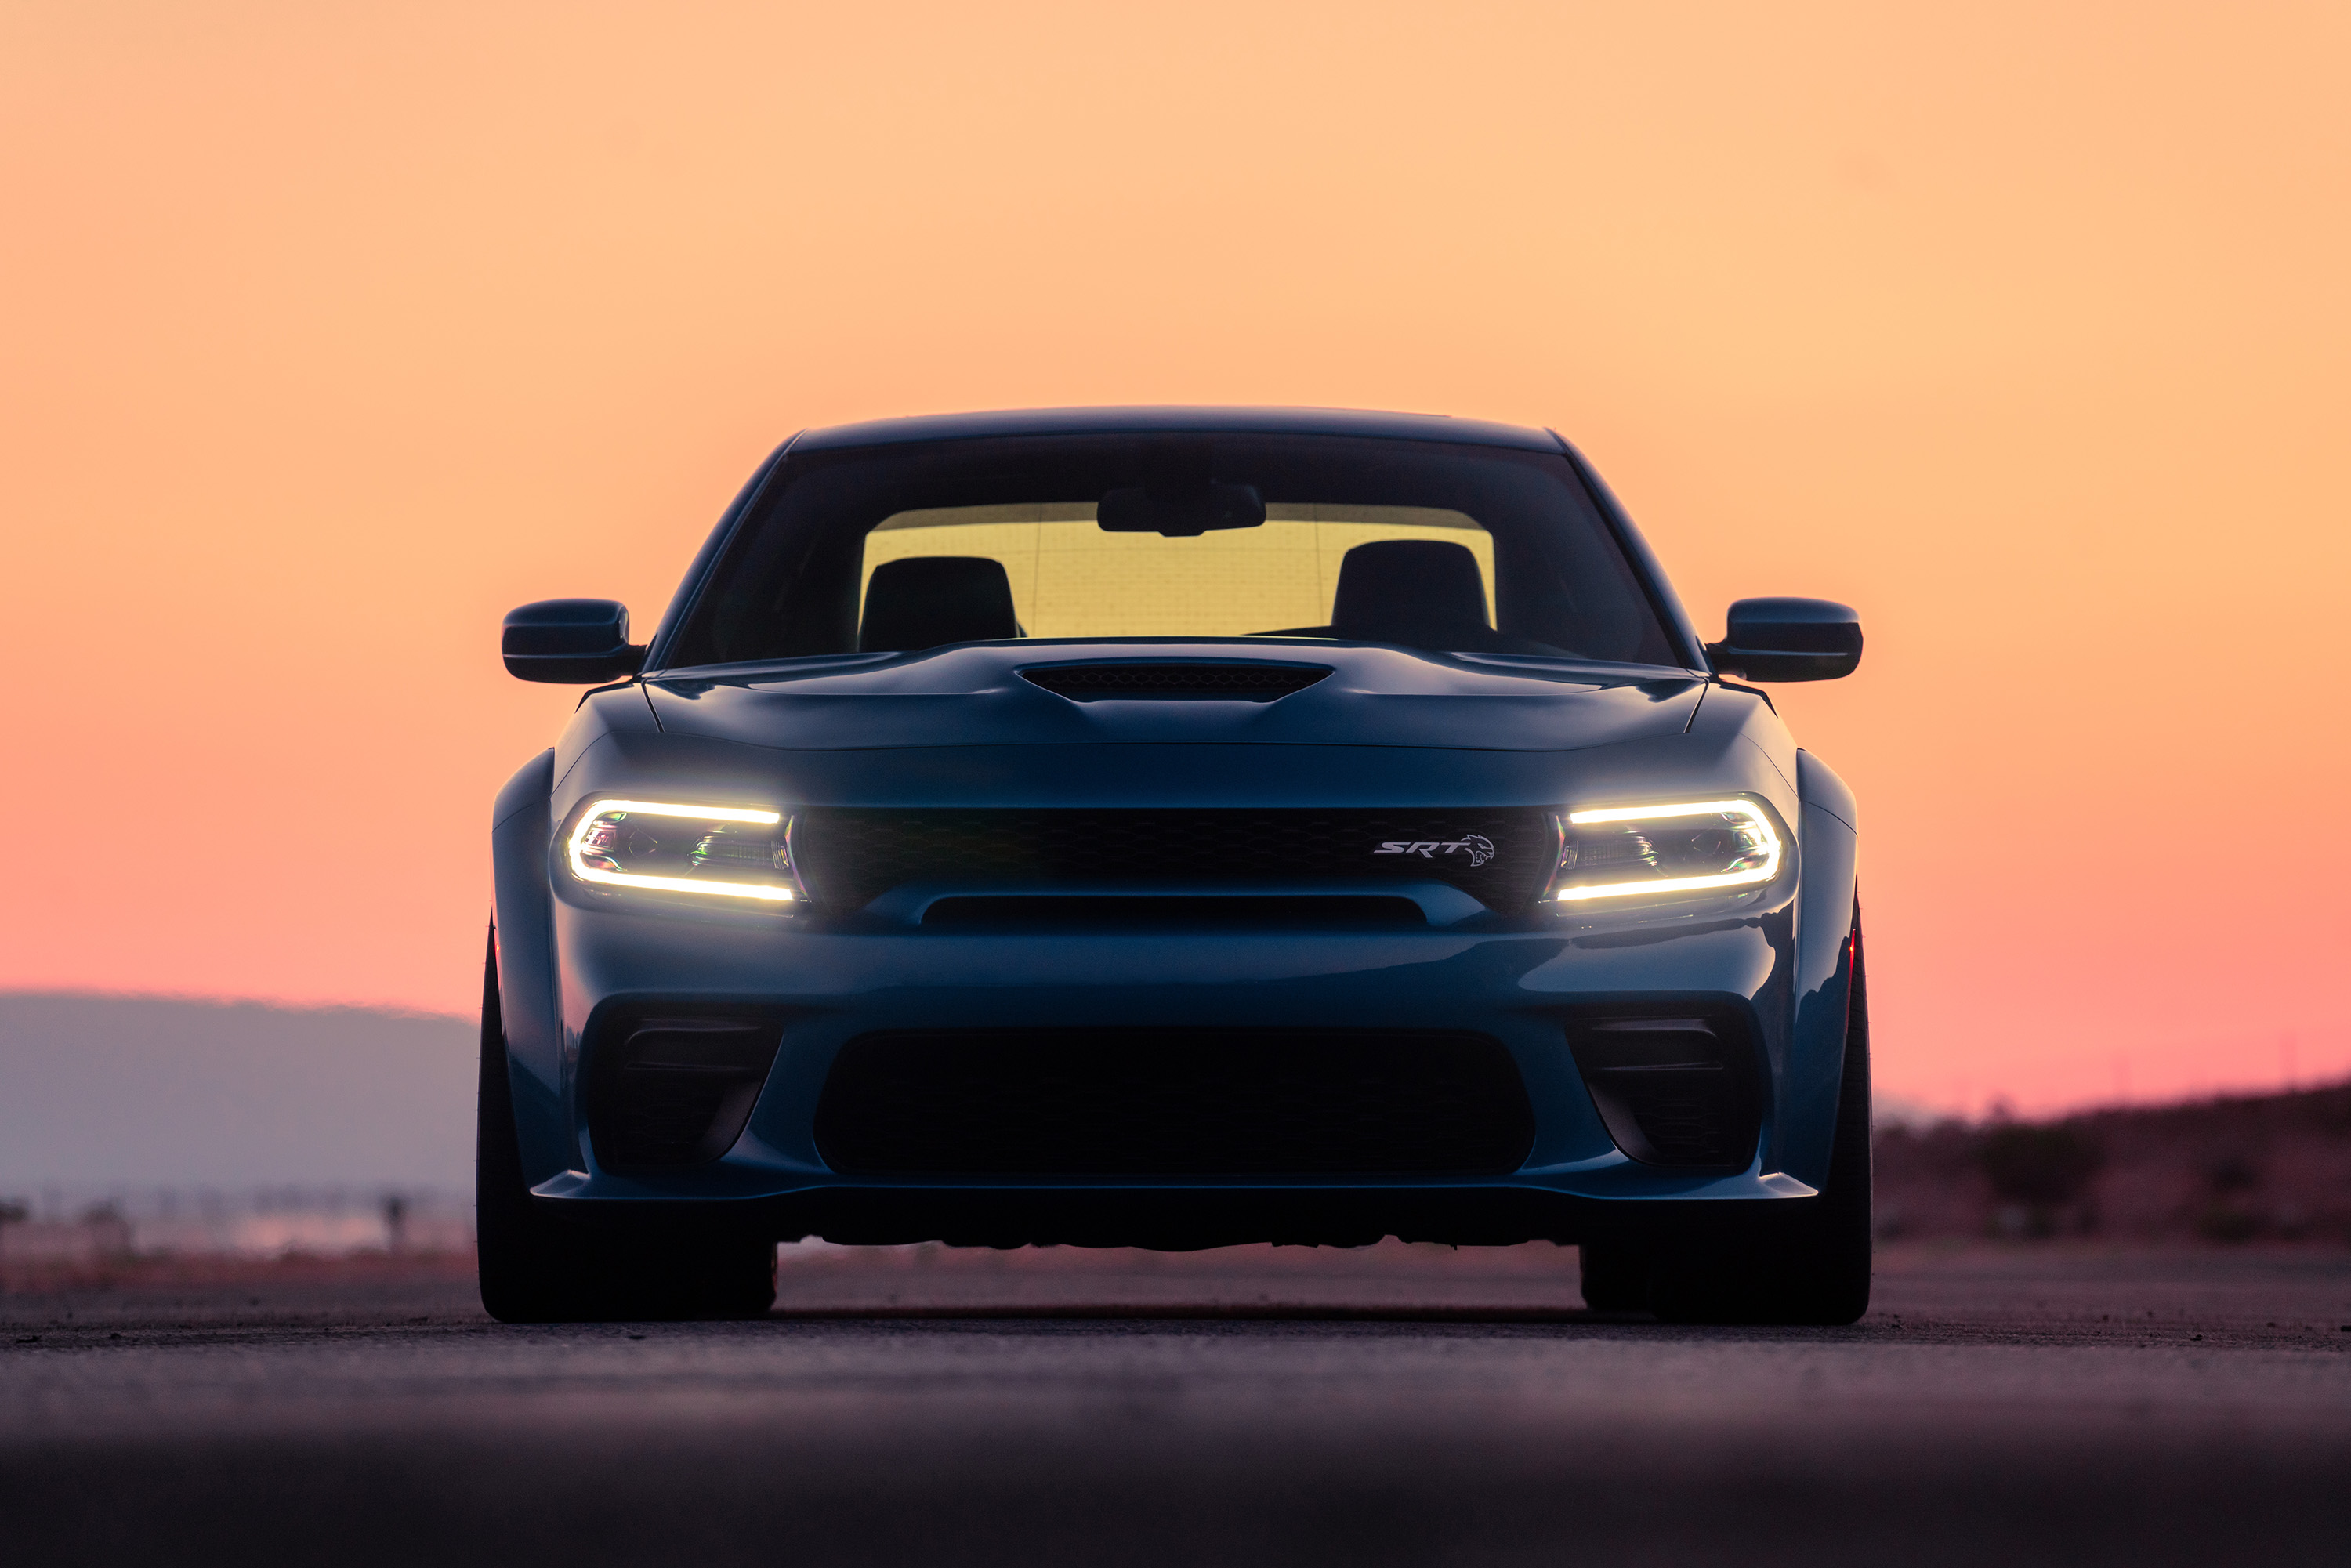 The Charger Widebody's imposing stance is hard to miss